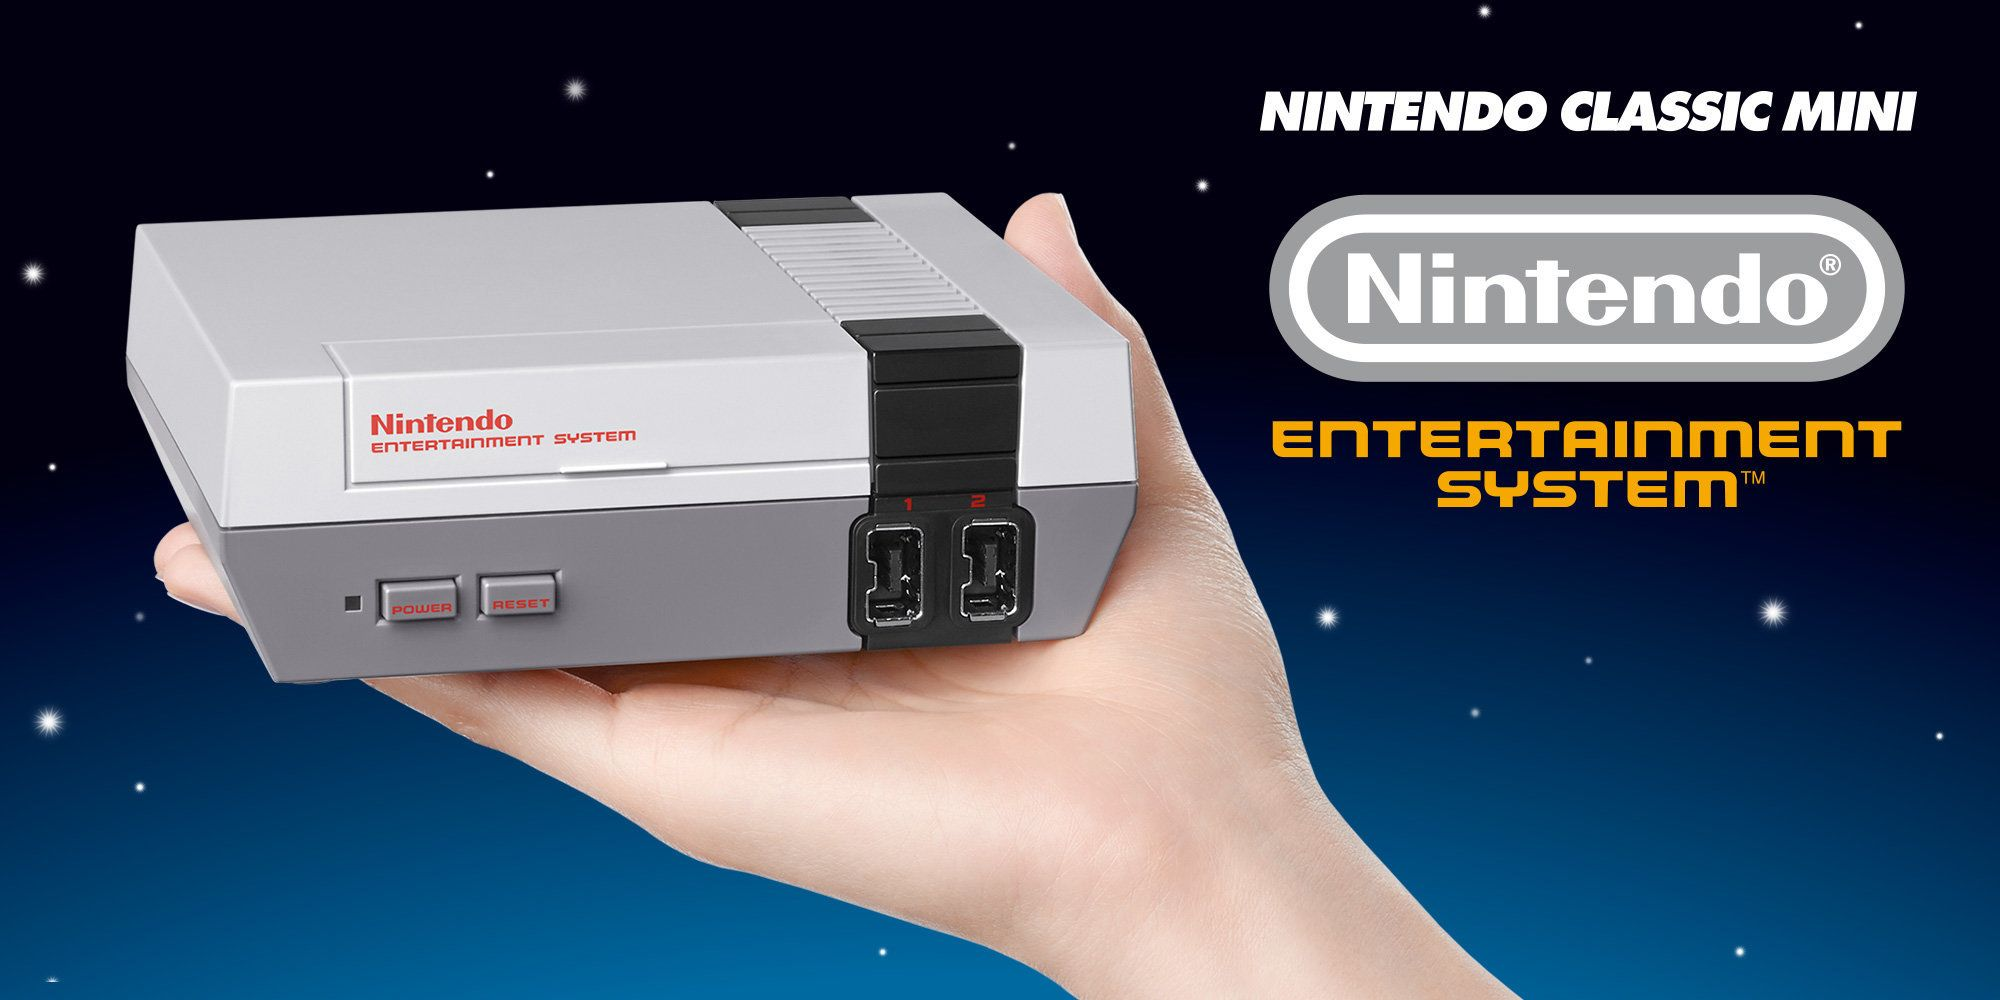 We Have Glorious News: Nintendo's Bringing Back The